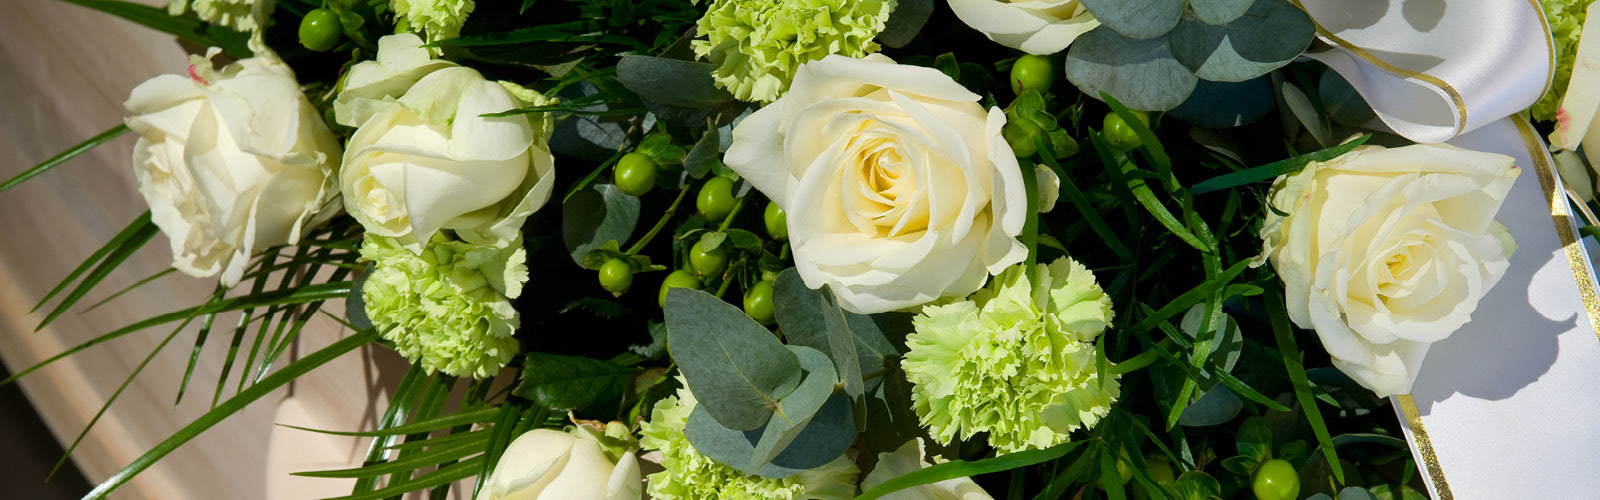 Funeral Flowers Sheffield By Blooms Sheffield Order Online